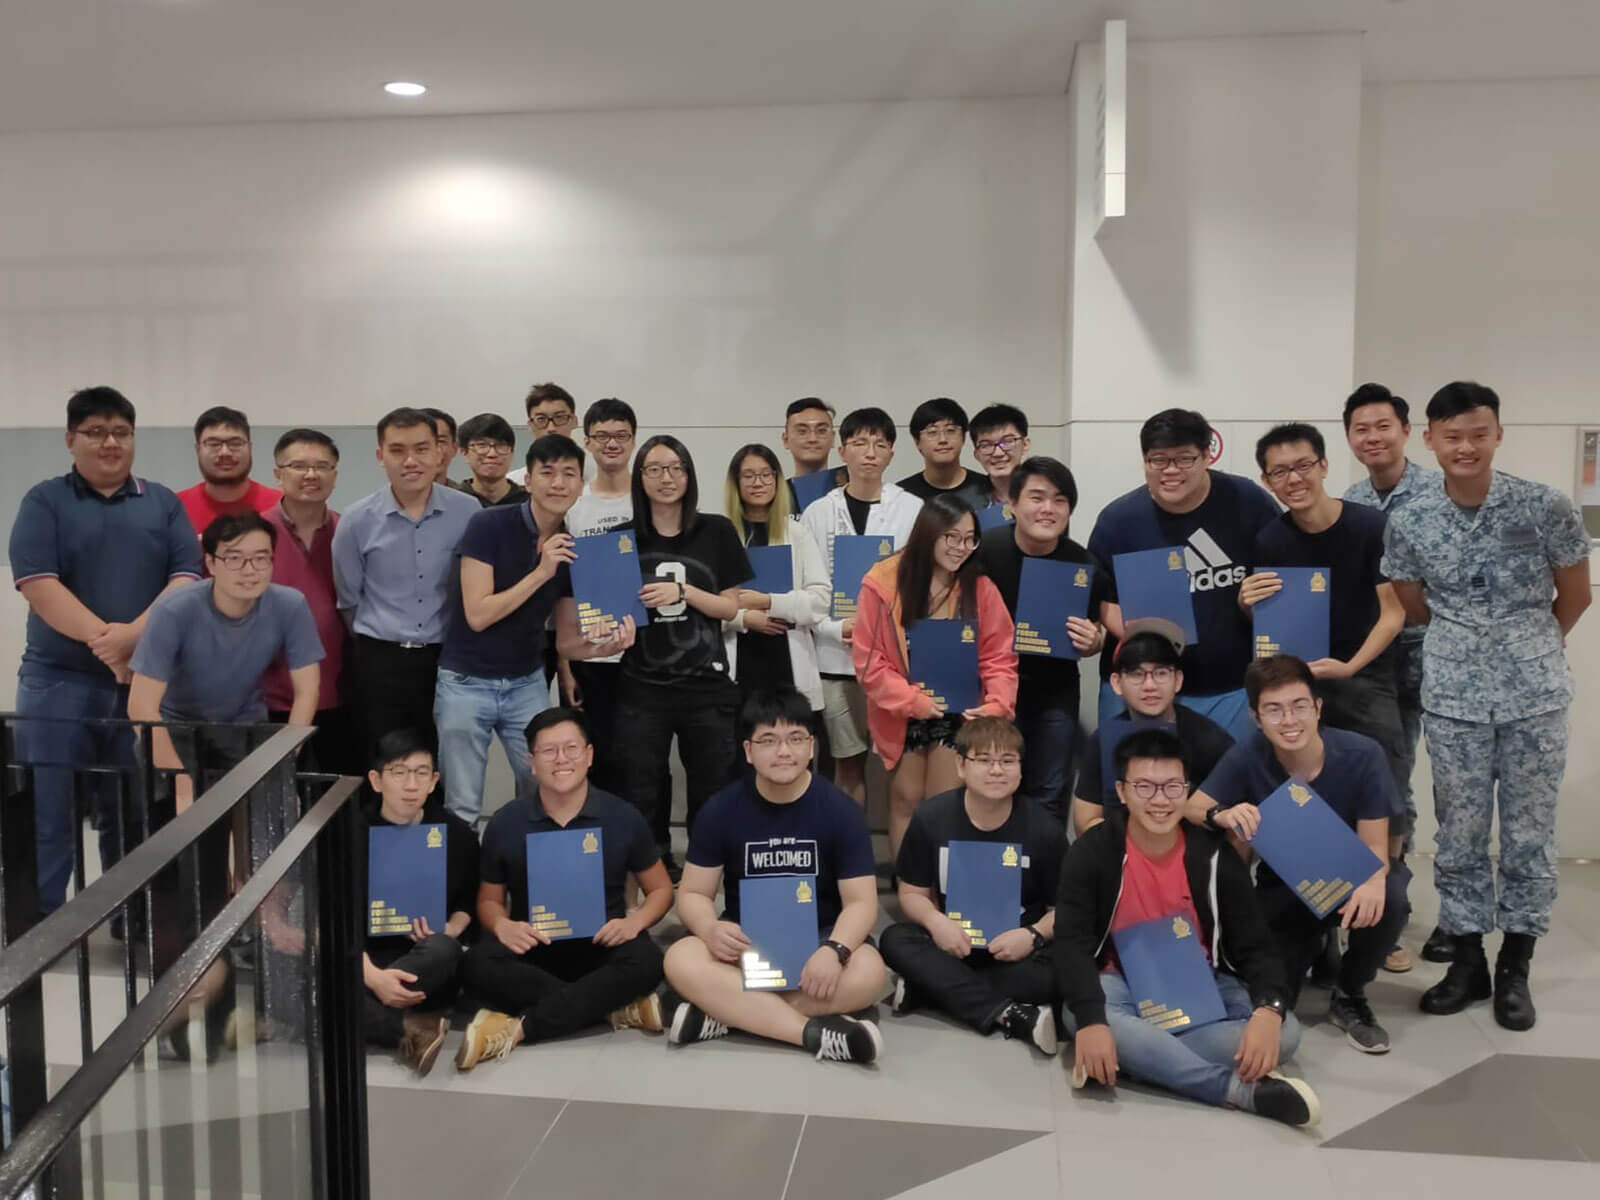 Group photo of 29 people, including DigiPen (Singapore) students and two instructors from the RSAF.